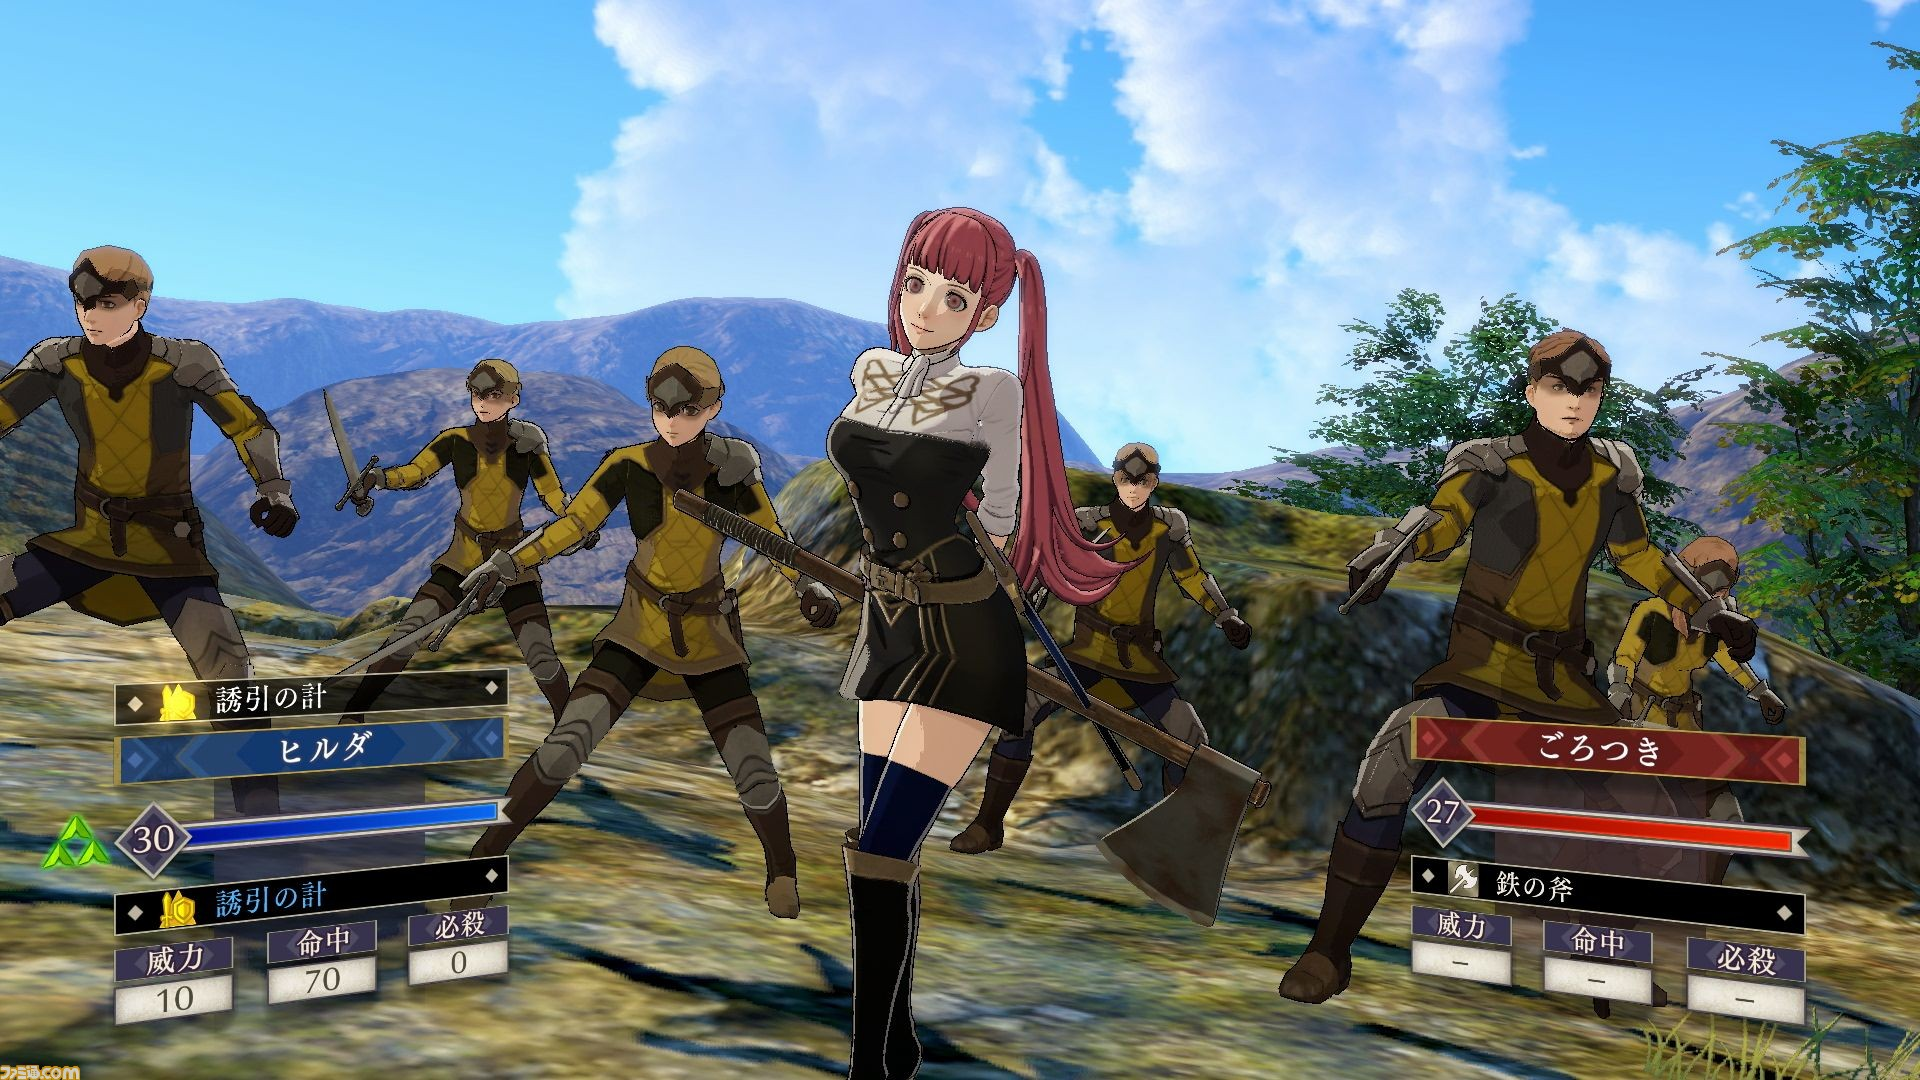 https://www.perfectly-nintendo.com/wp-content/uploads/sites/1/nggallery/fire-emblem-three-houses-15-05-2019/35.jpg